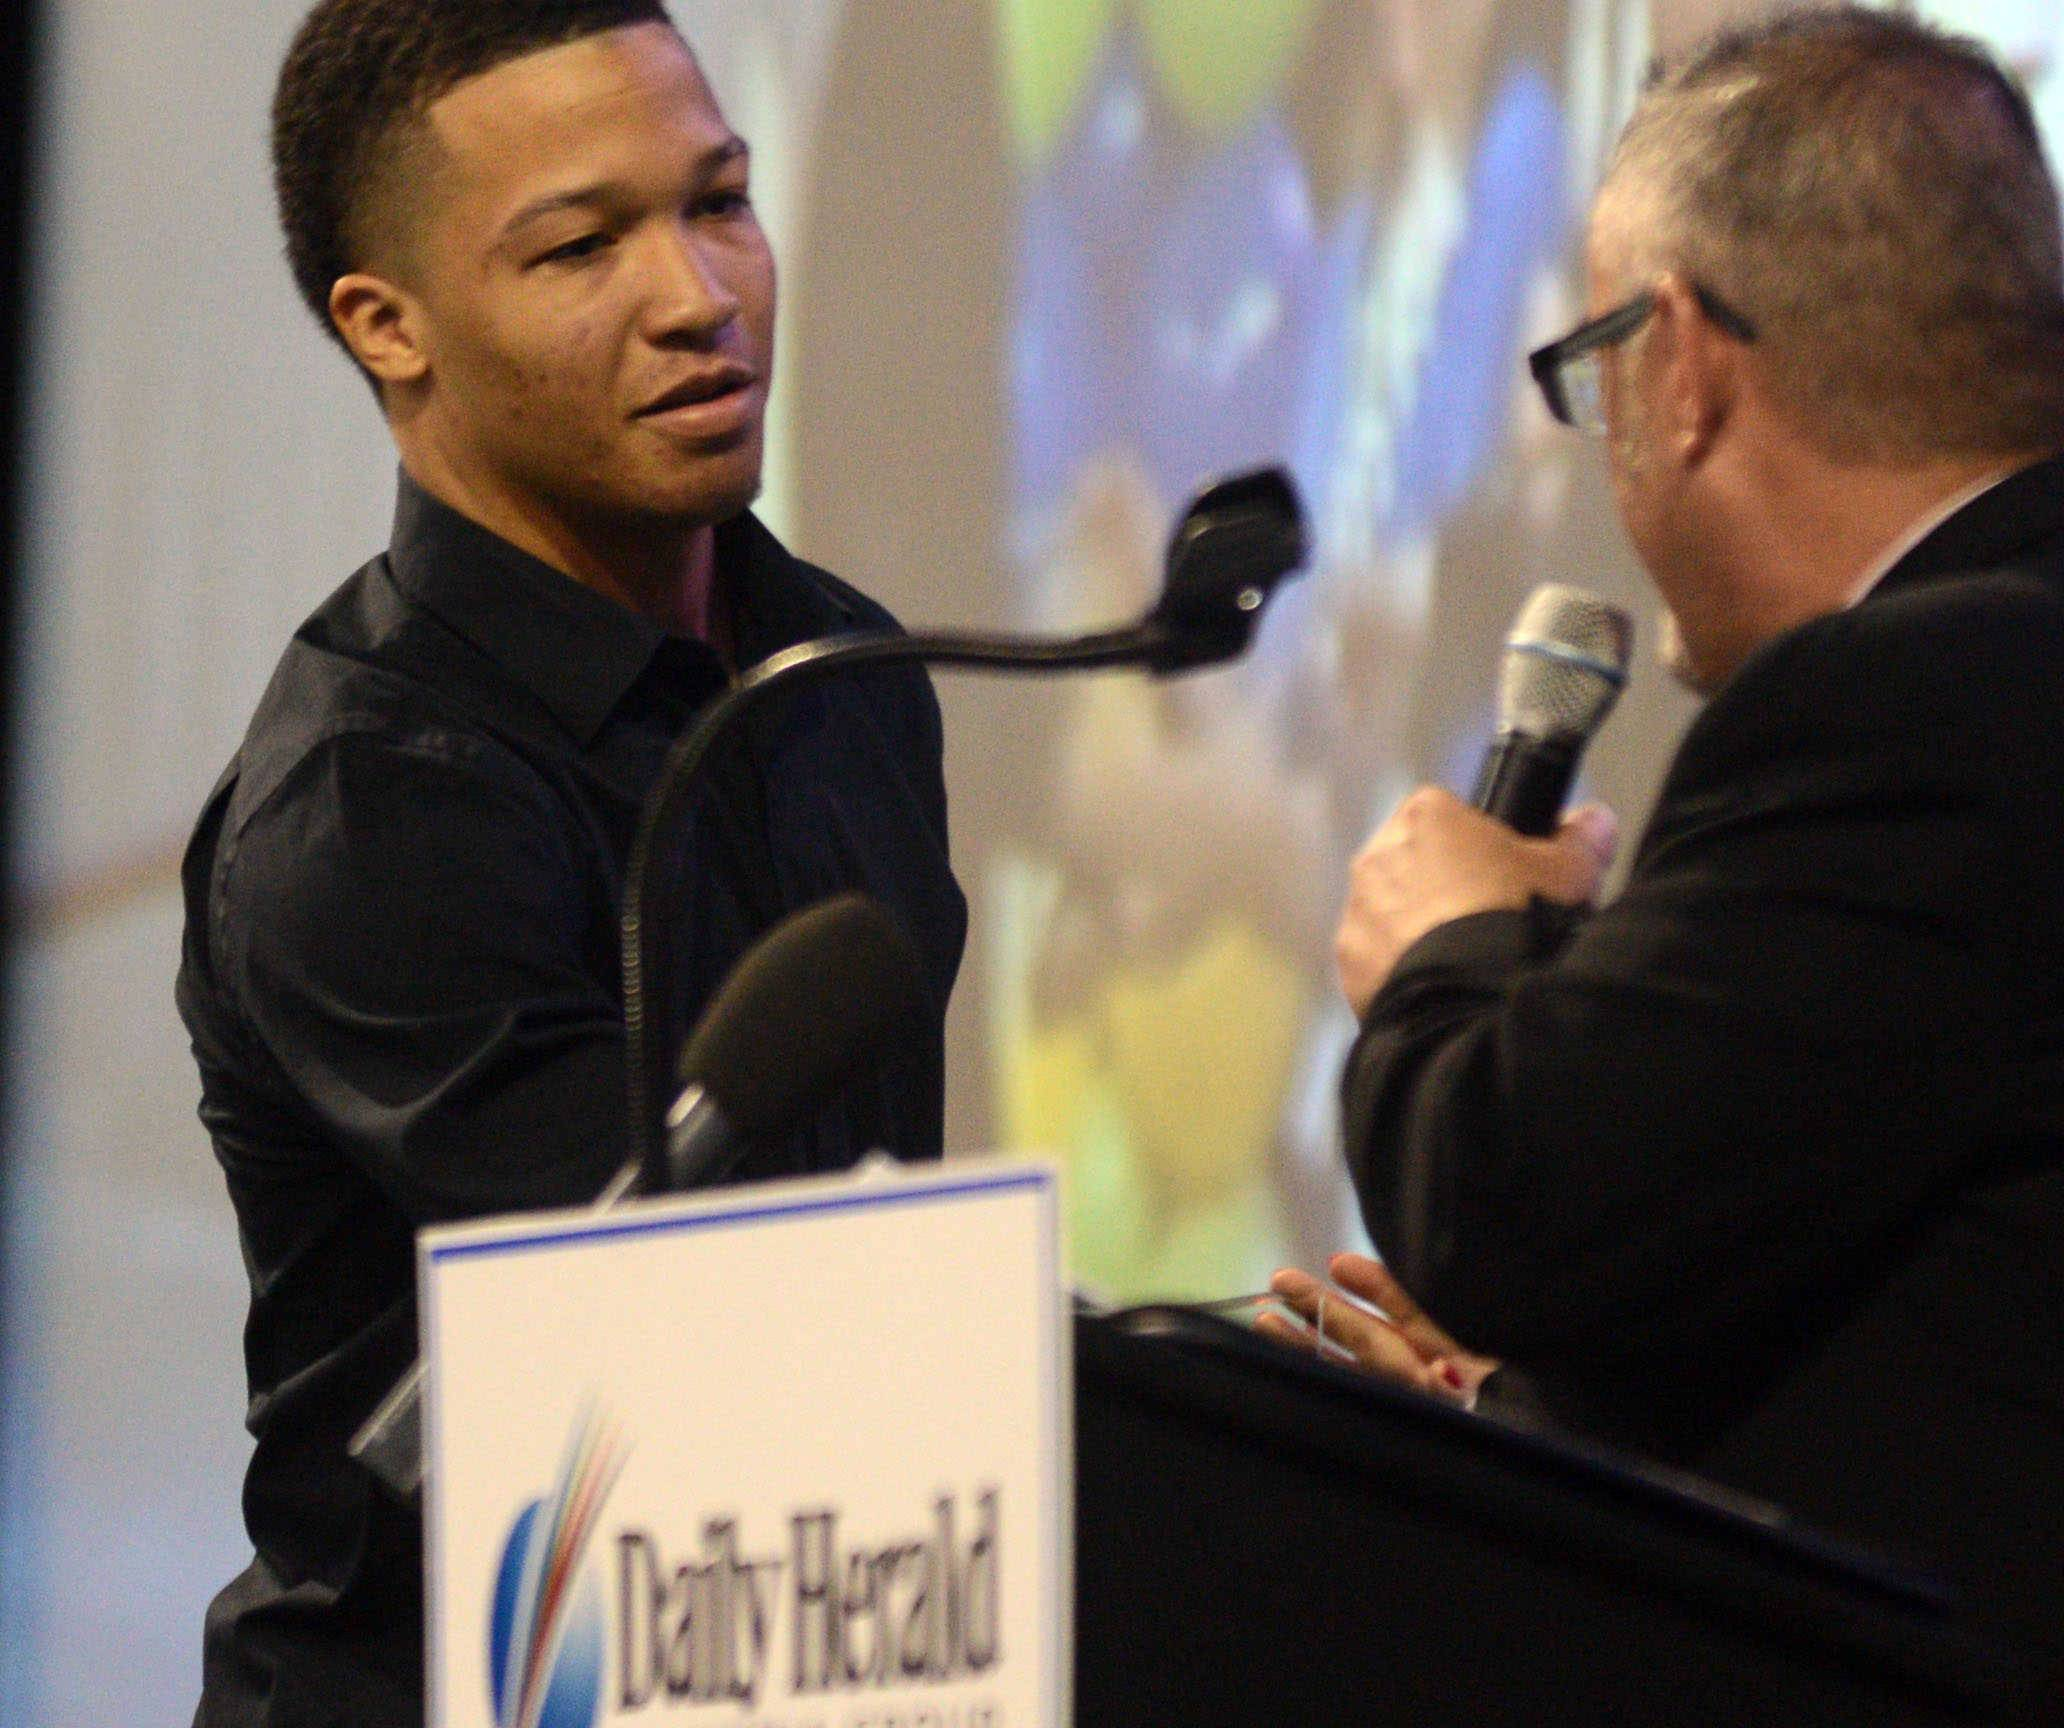 Stevenson High School basketball player Jalen Brunson receives a Dazzling Moment Award during the Daily Herald Prep Sports Excellence banquet at the Sears Centre Arena in Hoffman Estates. Brunson, a junior, scored 56 points in a state semifinal game.